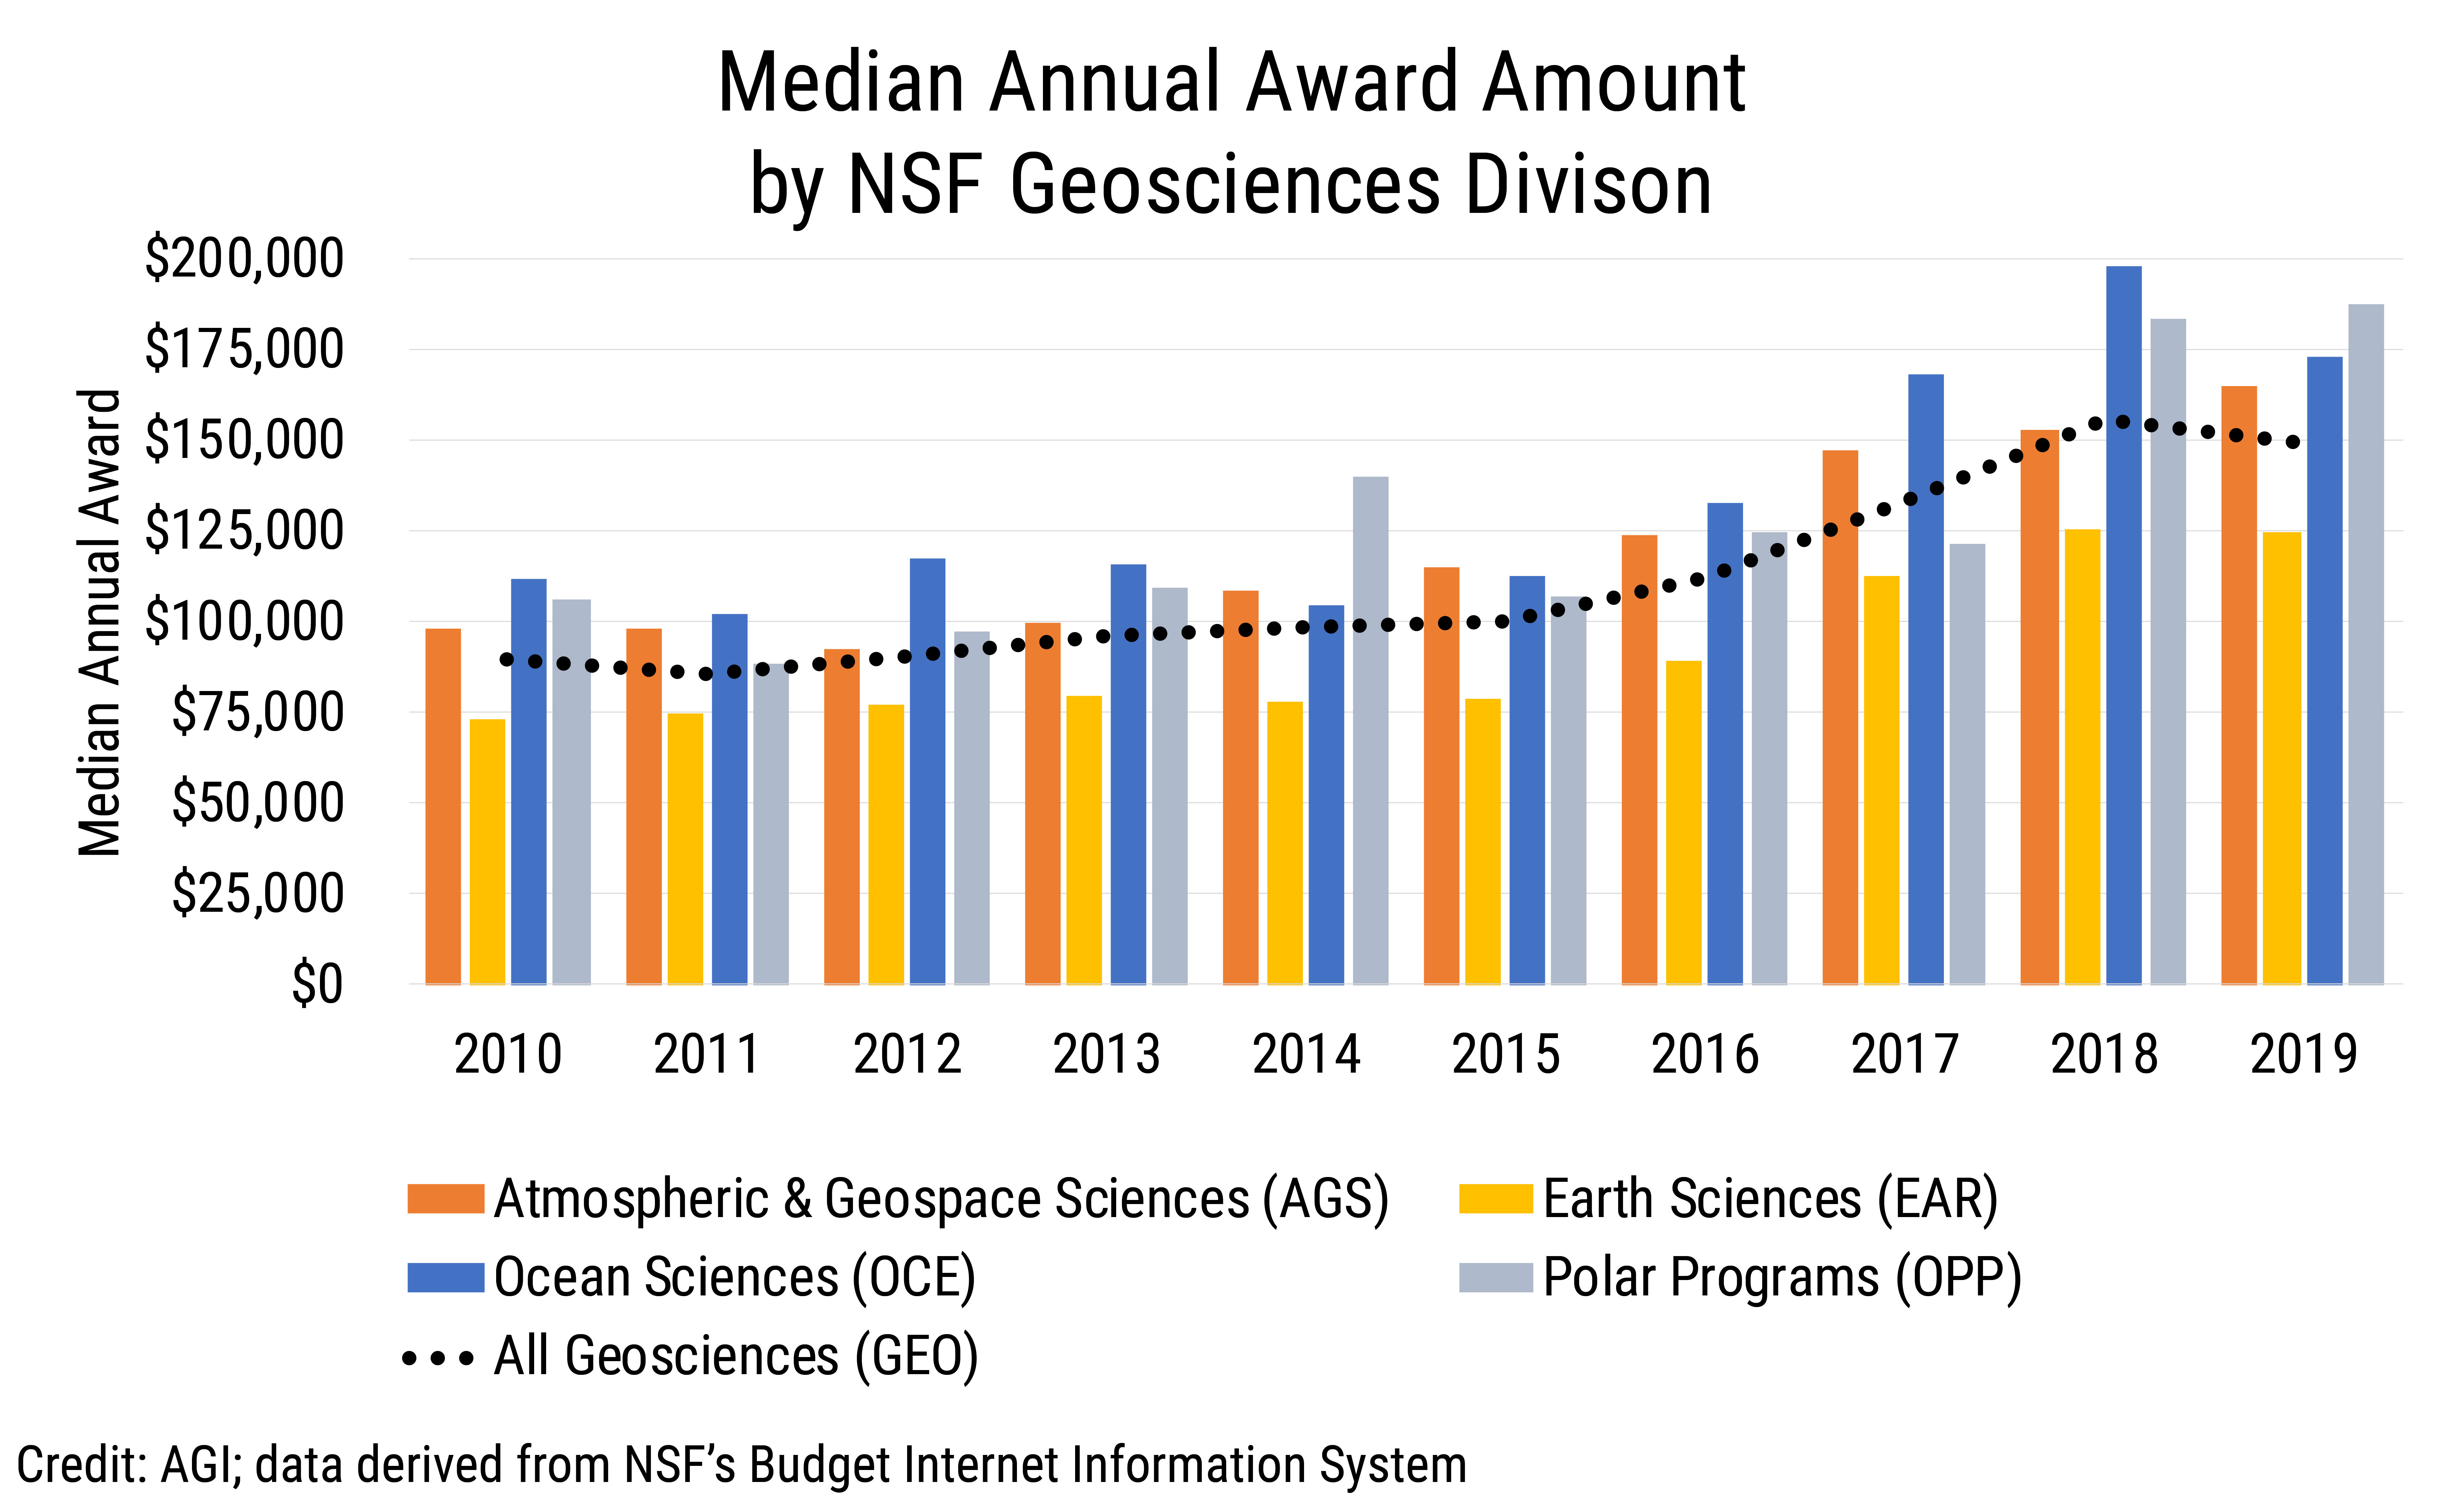 Data Brief 2019-016 chart 05: Median Annual Award Amount by NSF Geosciences Division (credit: AGI; data derived from NSF BIIS)